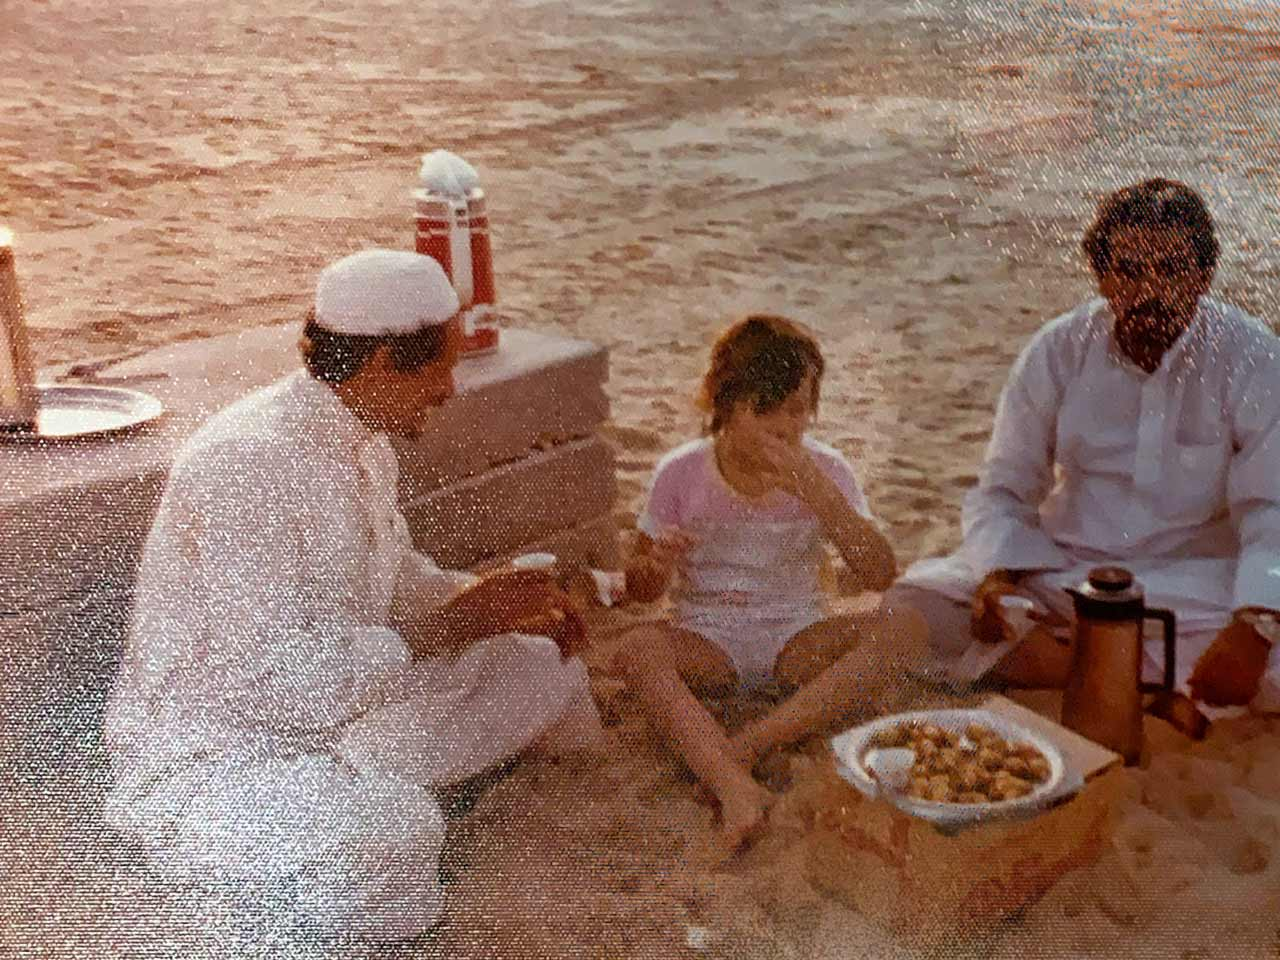 My sister Shanna at the beach shortly after we moved to 'Udhailiyah. Shanna never turned down a meal.